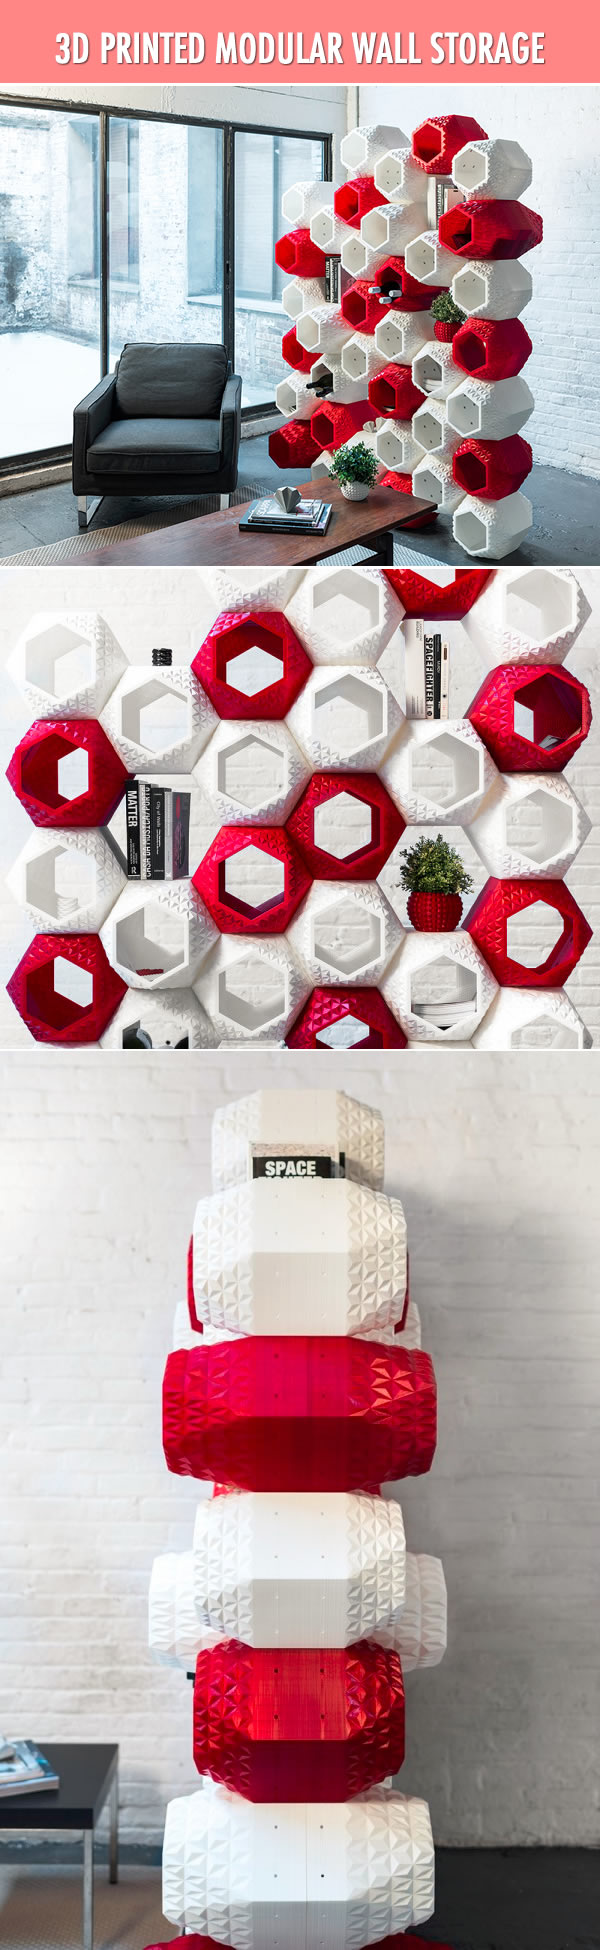 3D printed modular wall storage: fancy your living room.